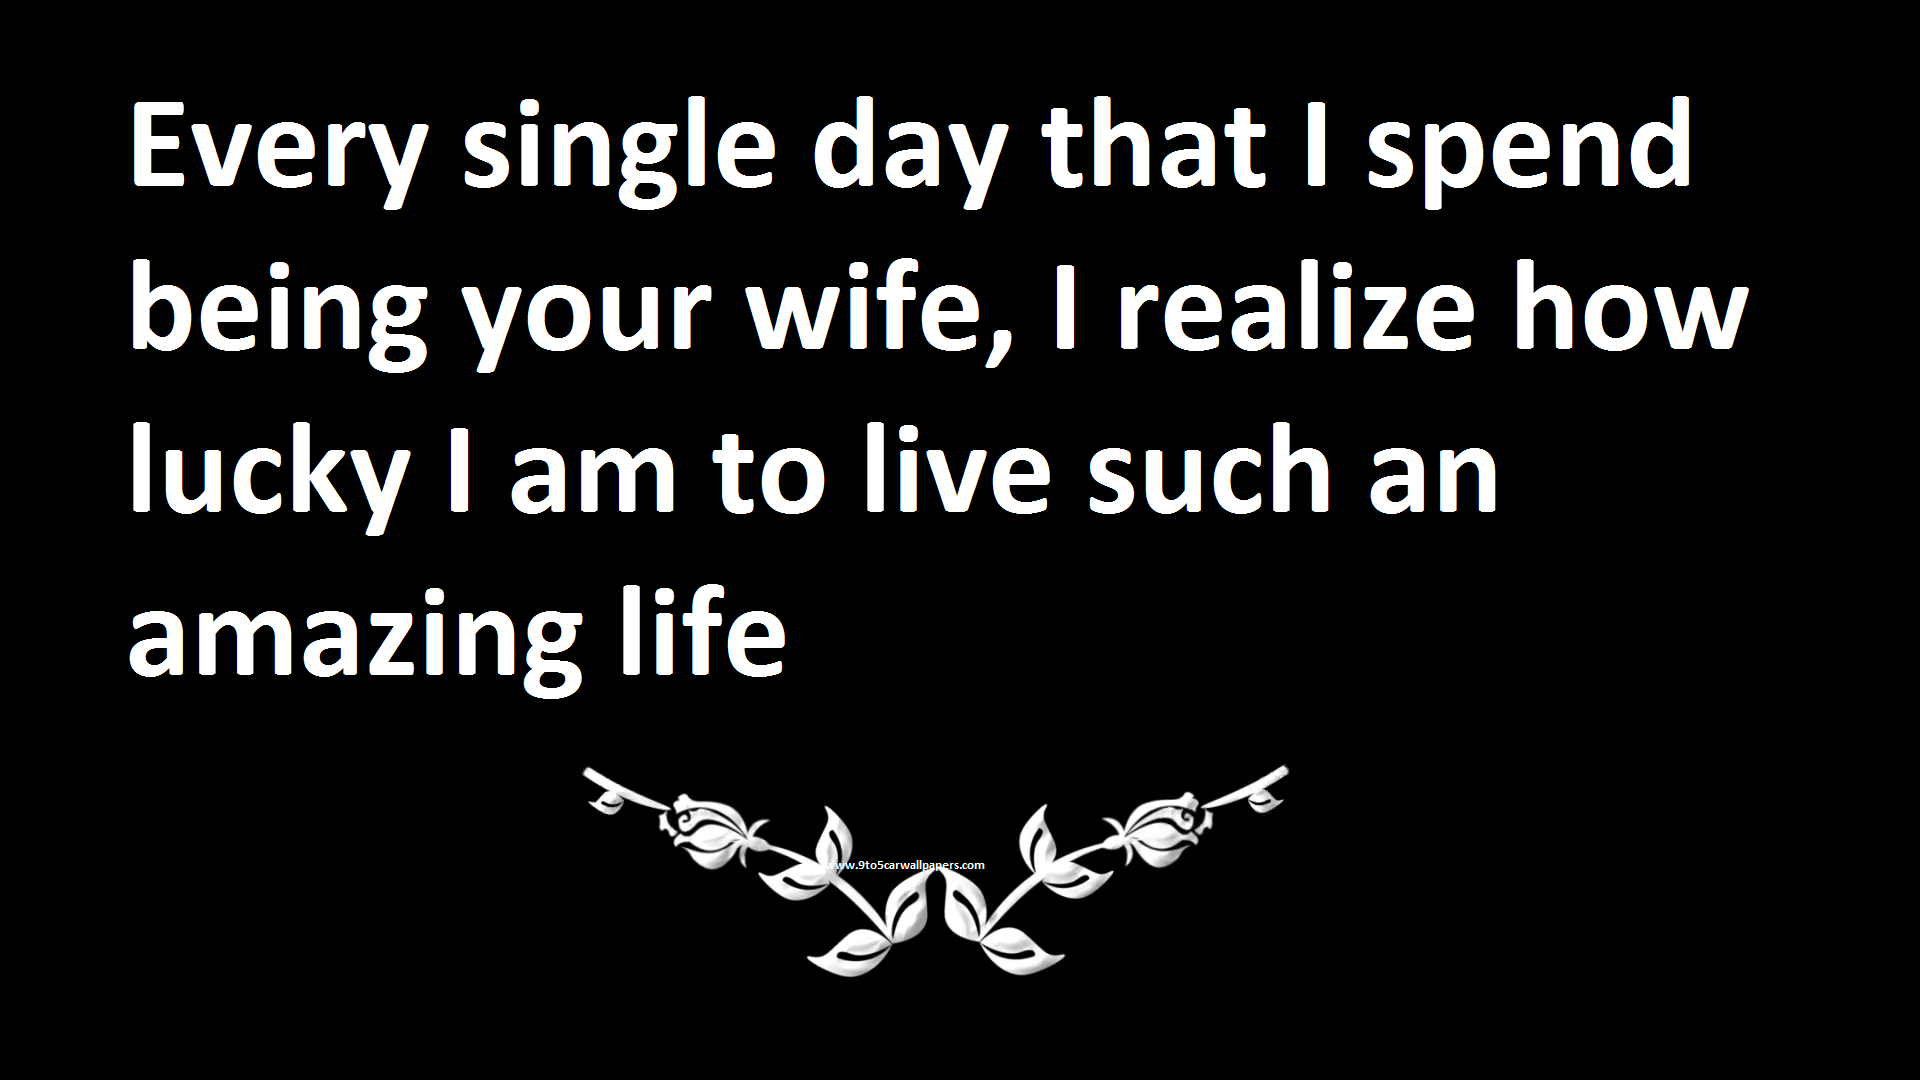 emotional quotes on husband wife relationship latest world events